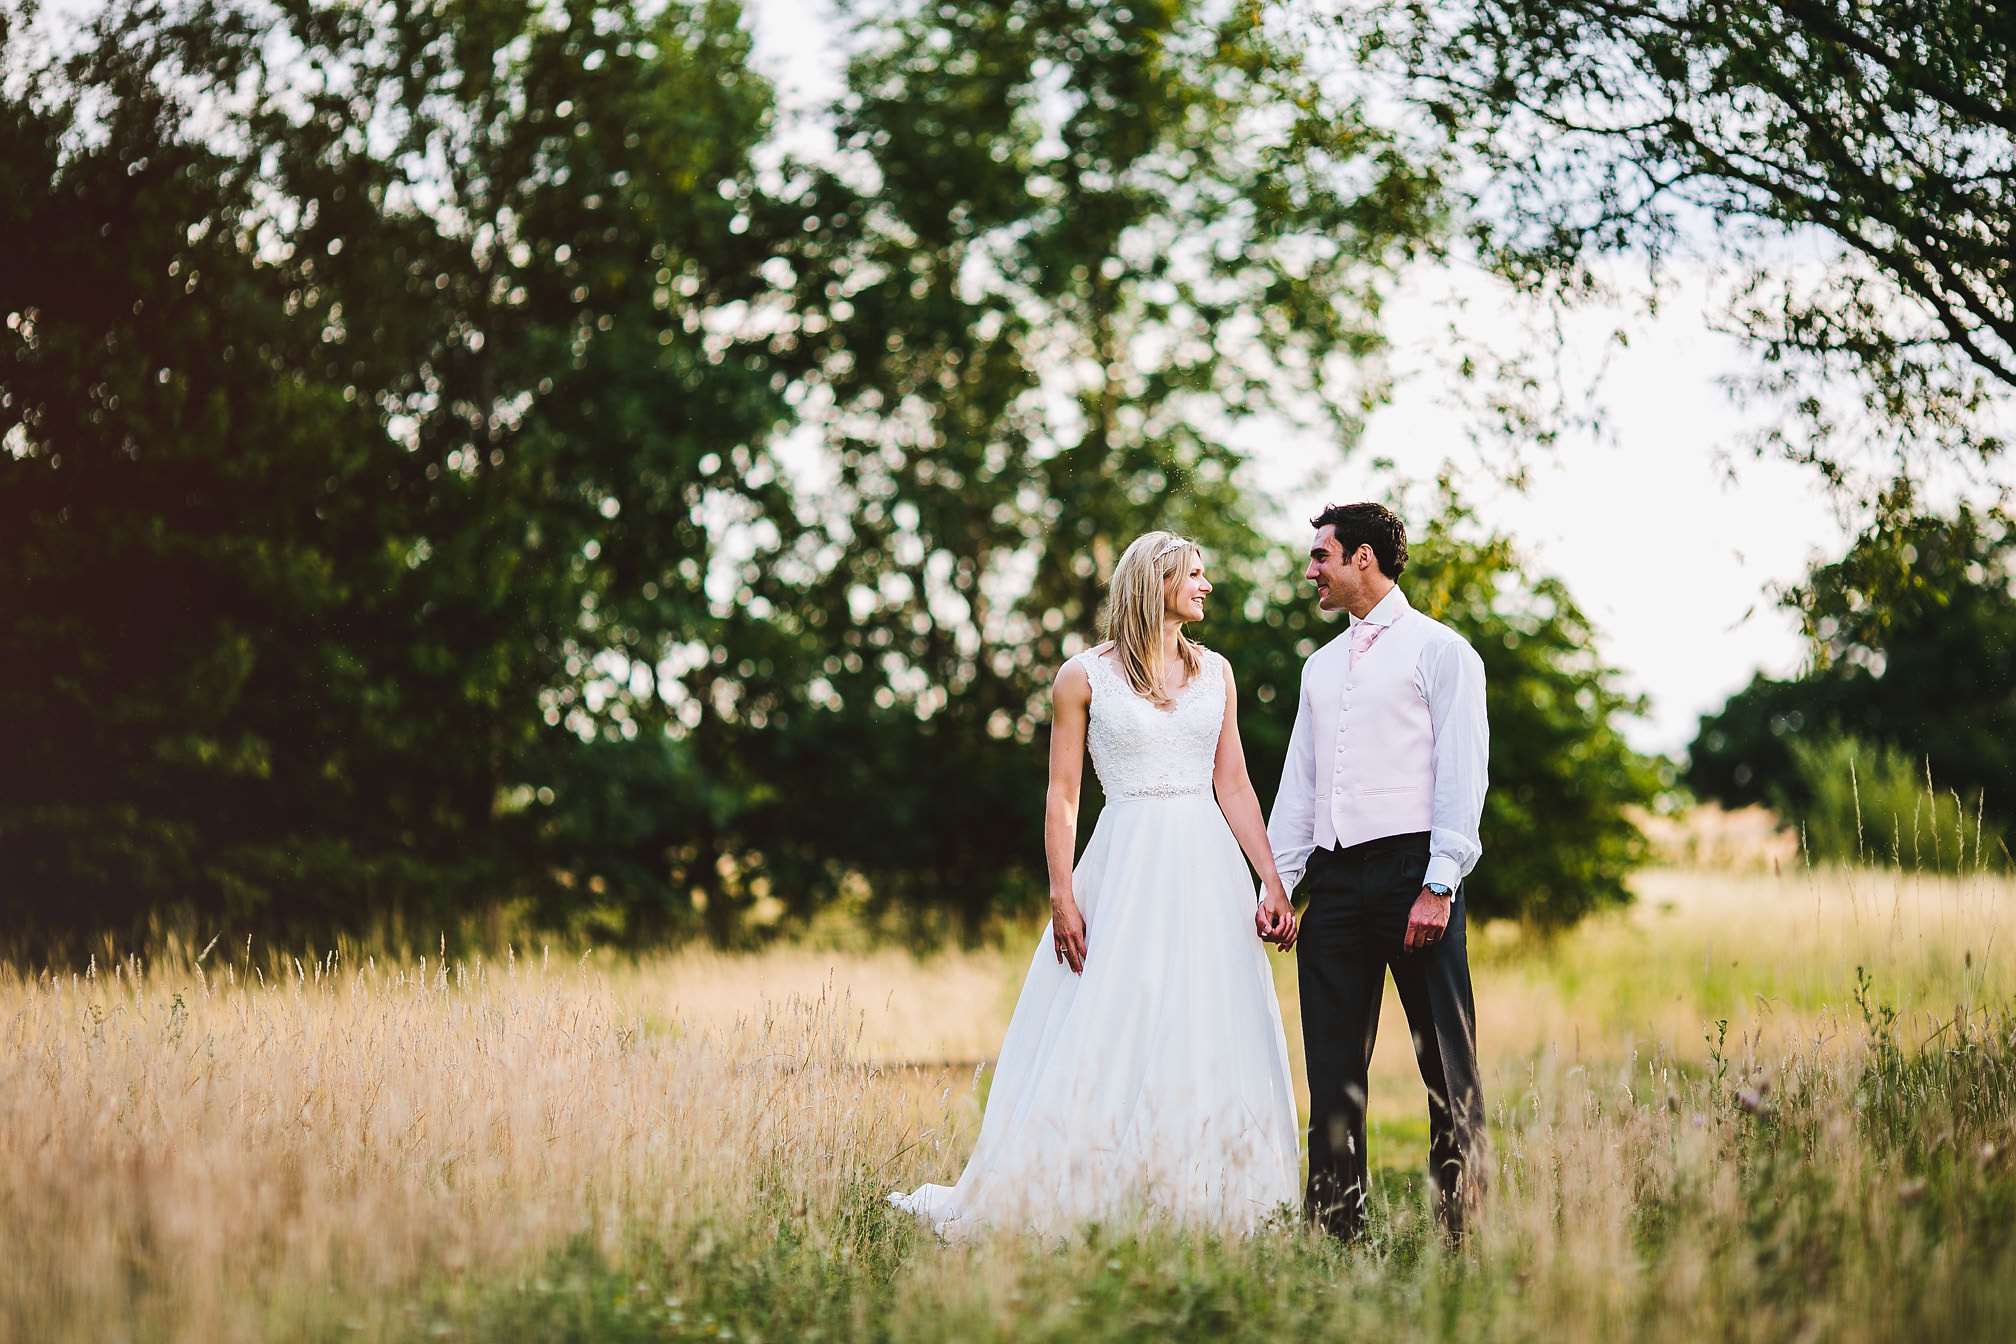 Kara & Javi during the Golden Hour at Kimbolton Castle